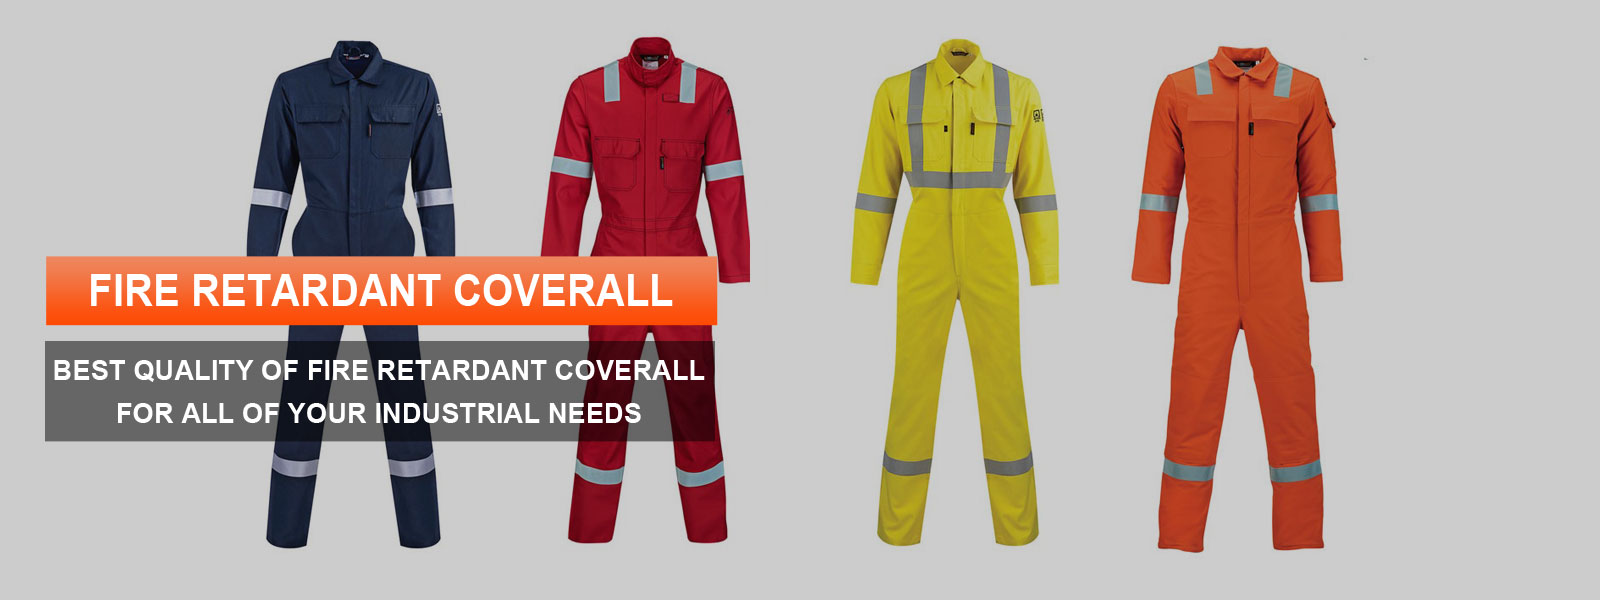 Fire Retardant Coverall Manufacturers in Iraq